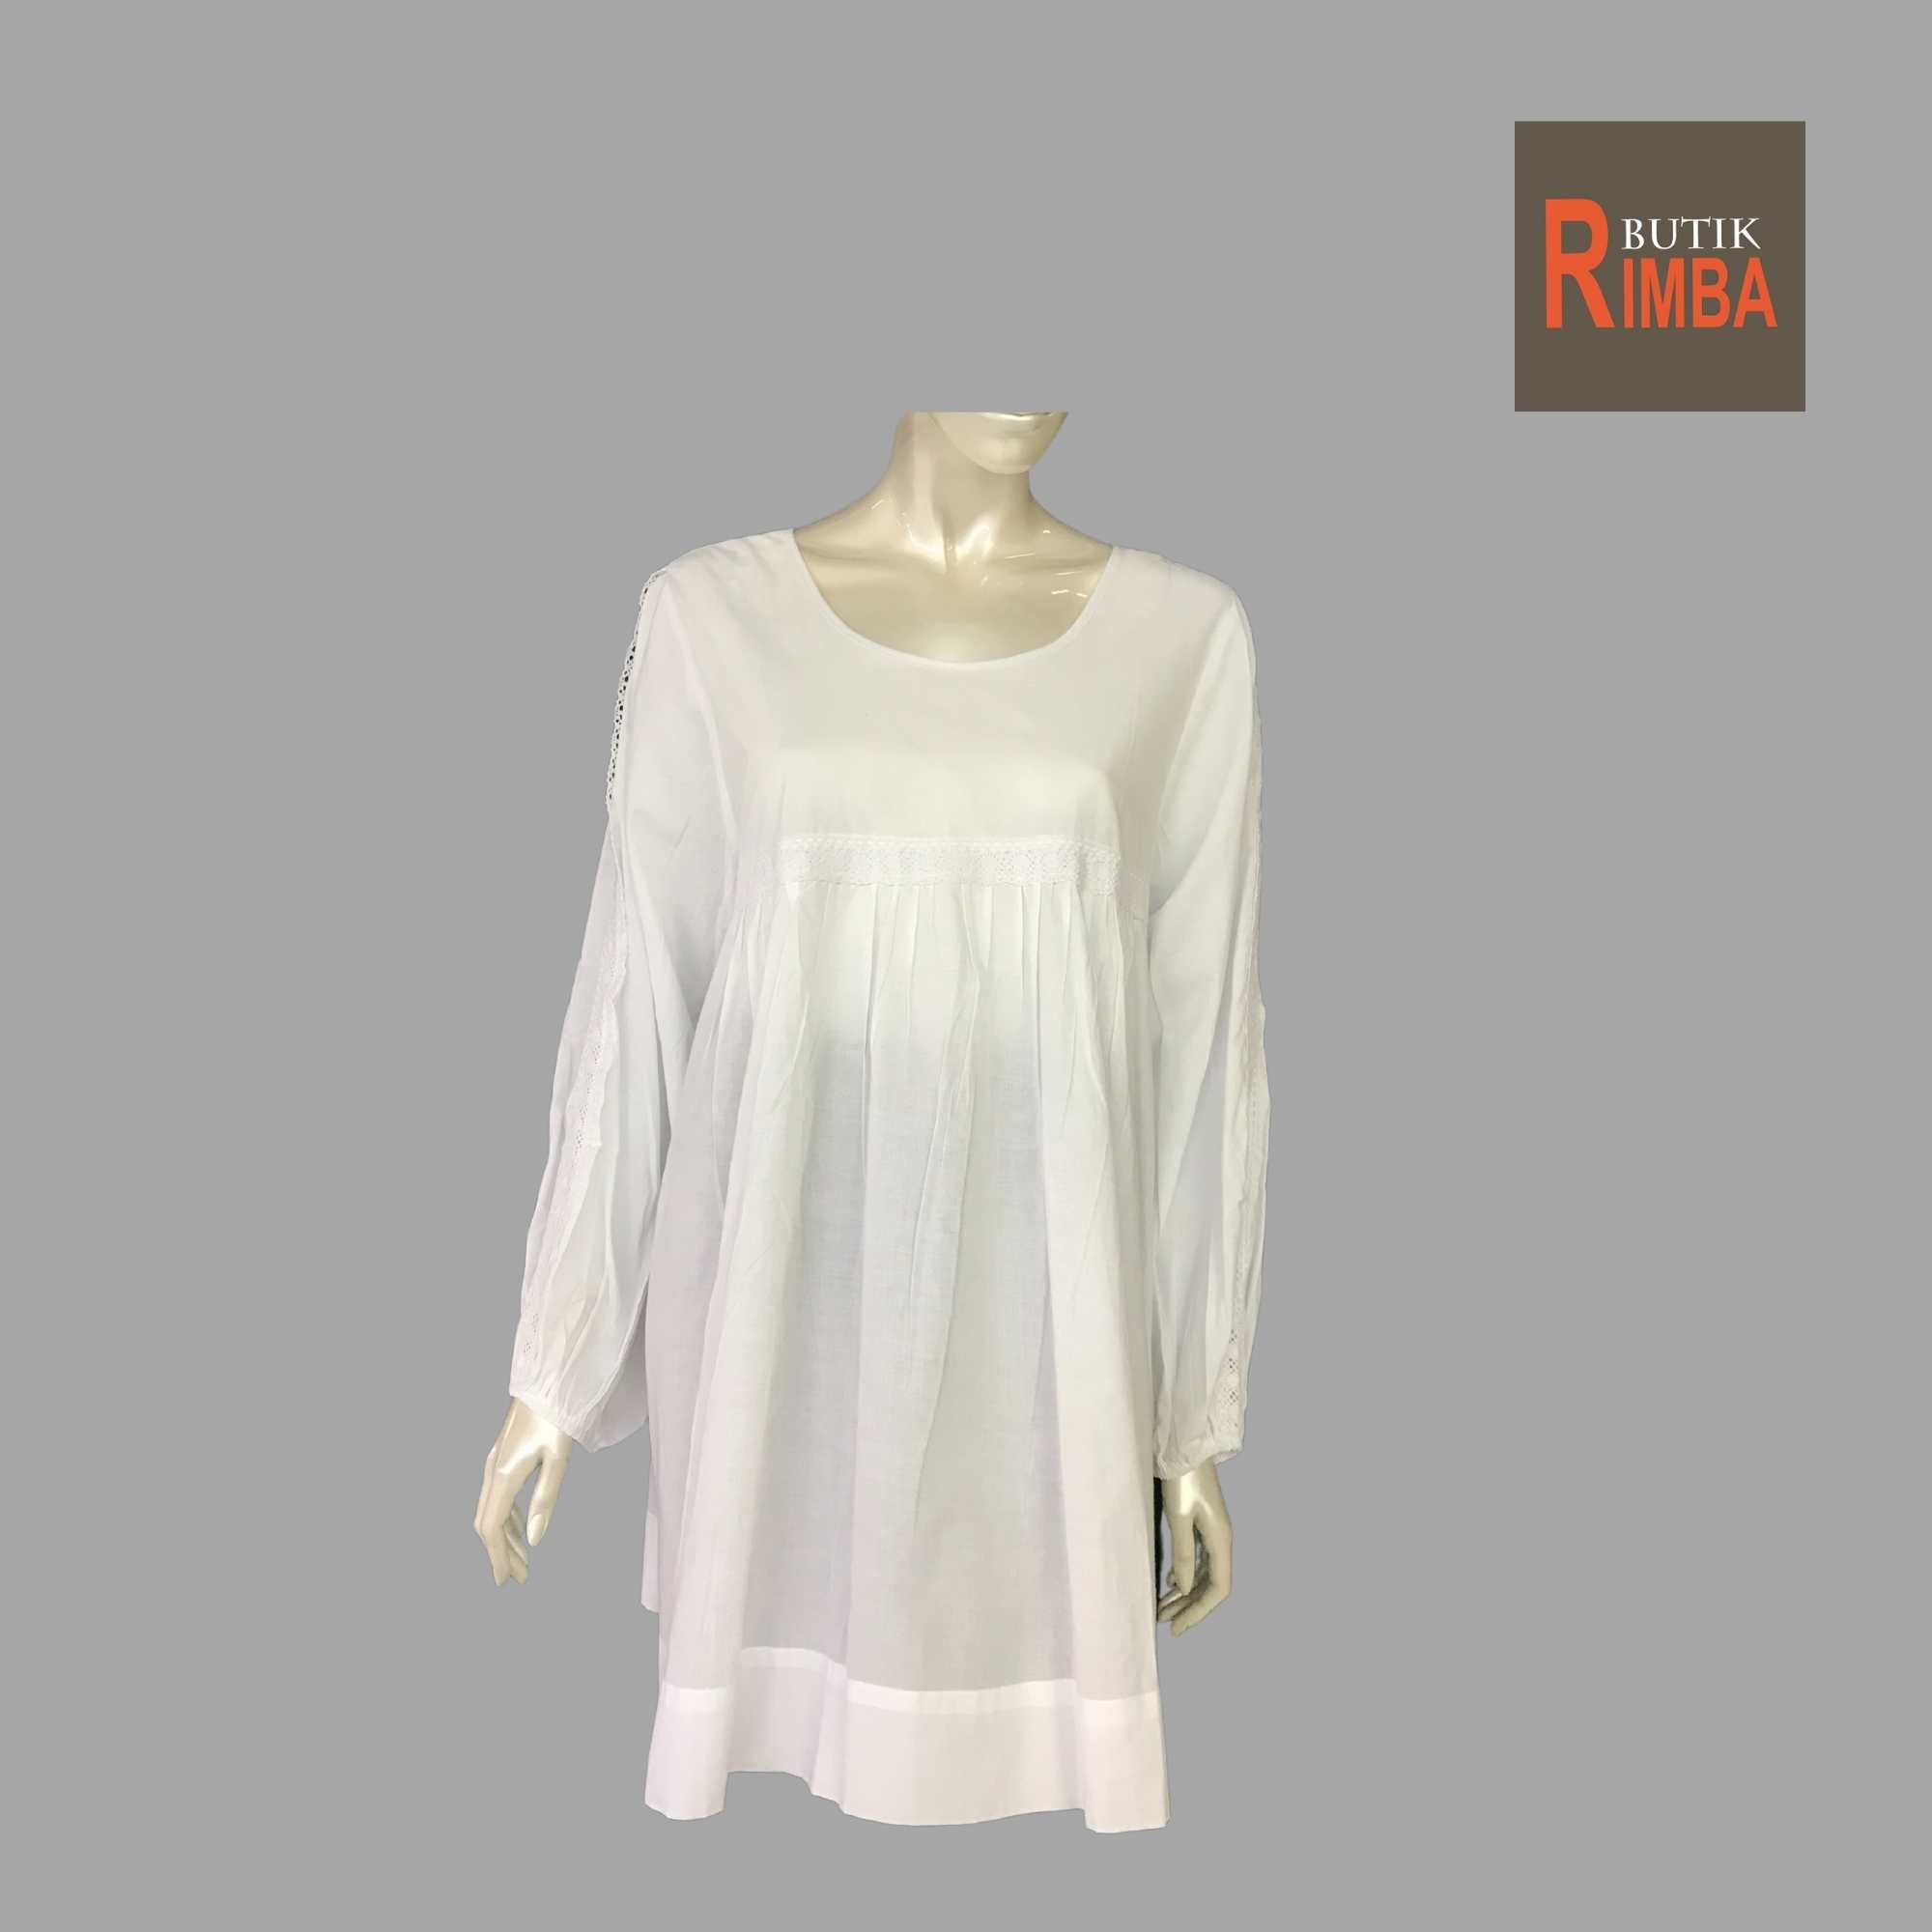 WOMEN CASUAL AND COMFORTABLE WHITE BLOUSE COTTON FREE SIZE PATTERN 03